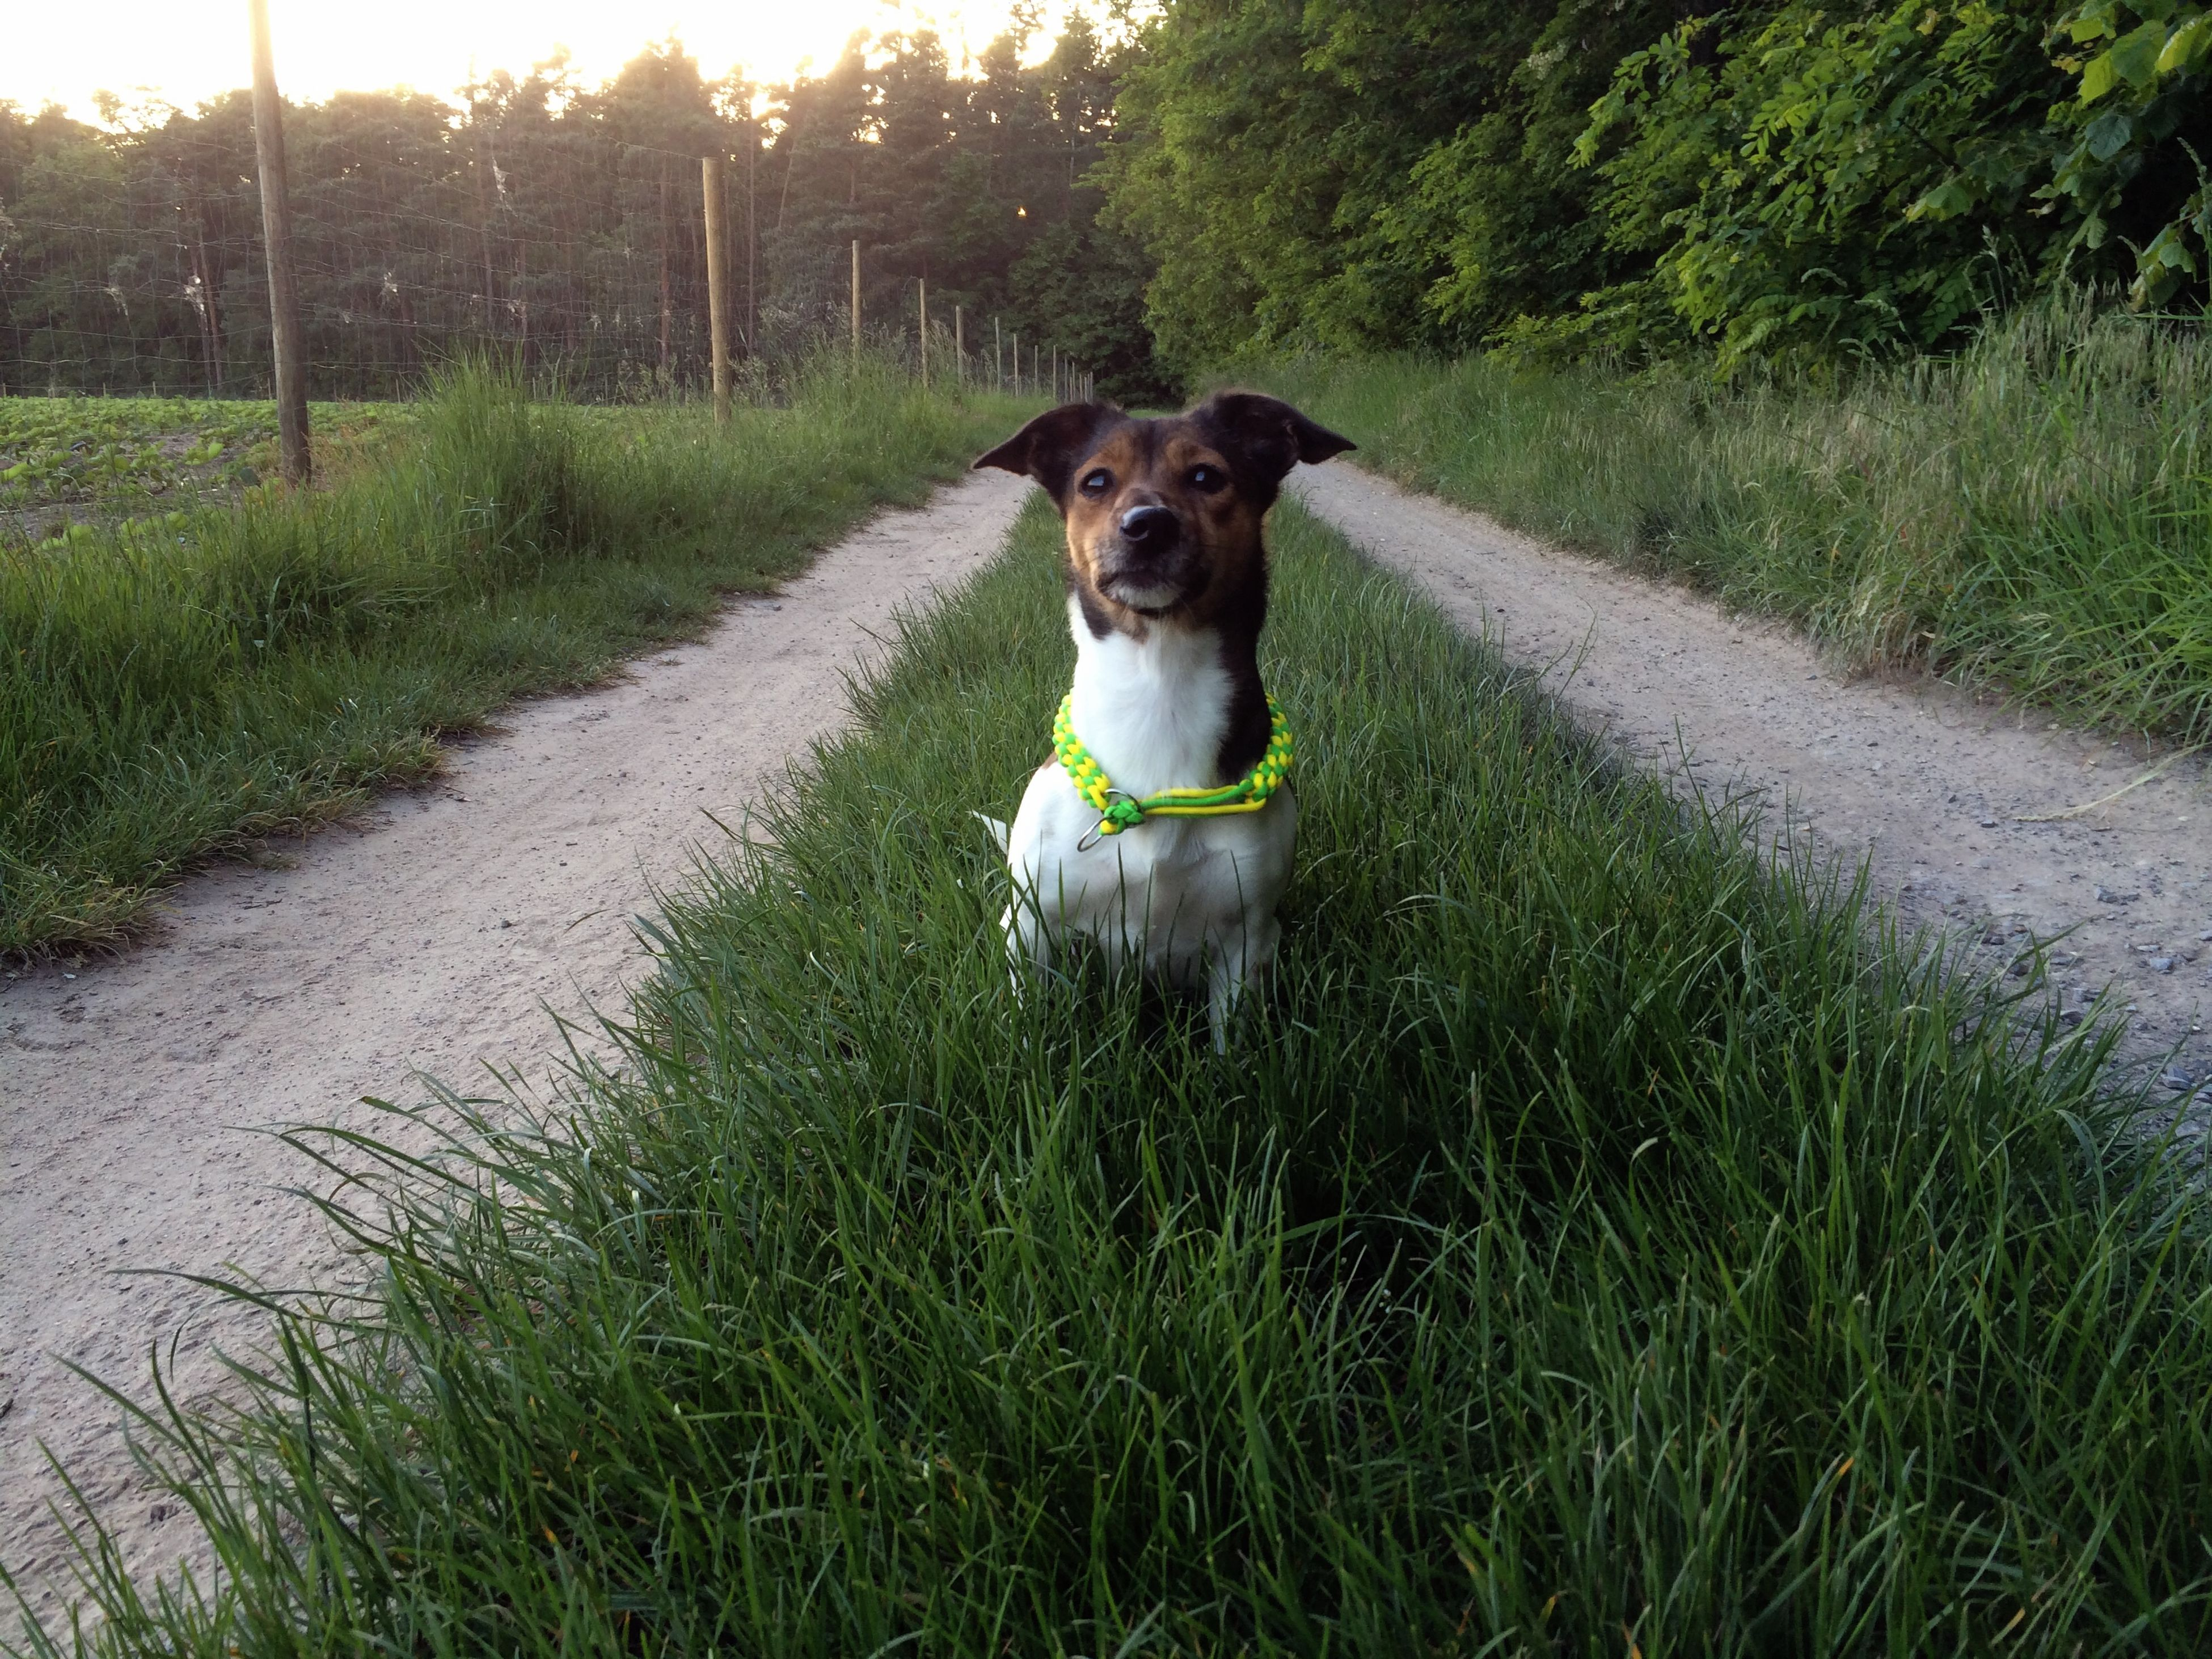 one animal, pets, dog, domestic animals, animal themes, mammal, grass, field, portrait, looking at camera, plant, full length, grassy, sitting, growth, running, nature, green color, pet collar, outdoors